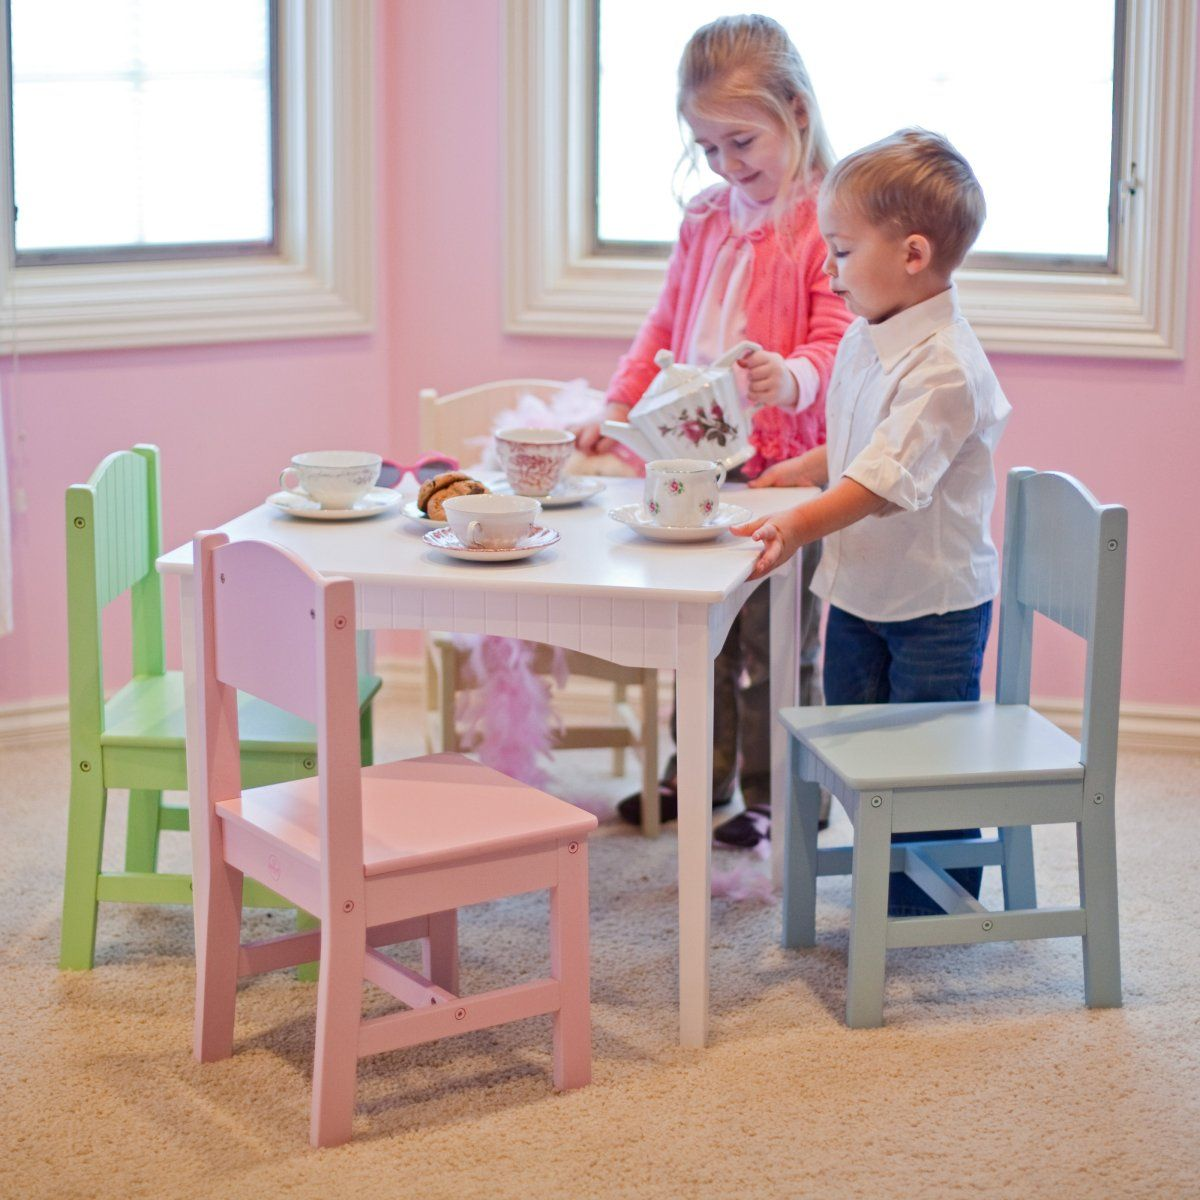 Kids Table Set Chairs Play Wood Activity Toddler Children 4 Chair Kidkraft  New. KidKraft Nantucket Pastel Table and Chair Set   Childrens Table